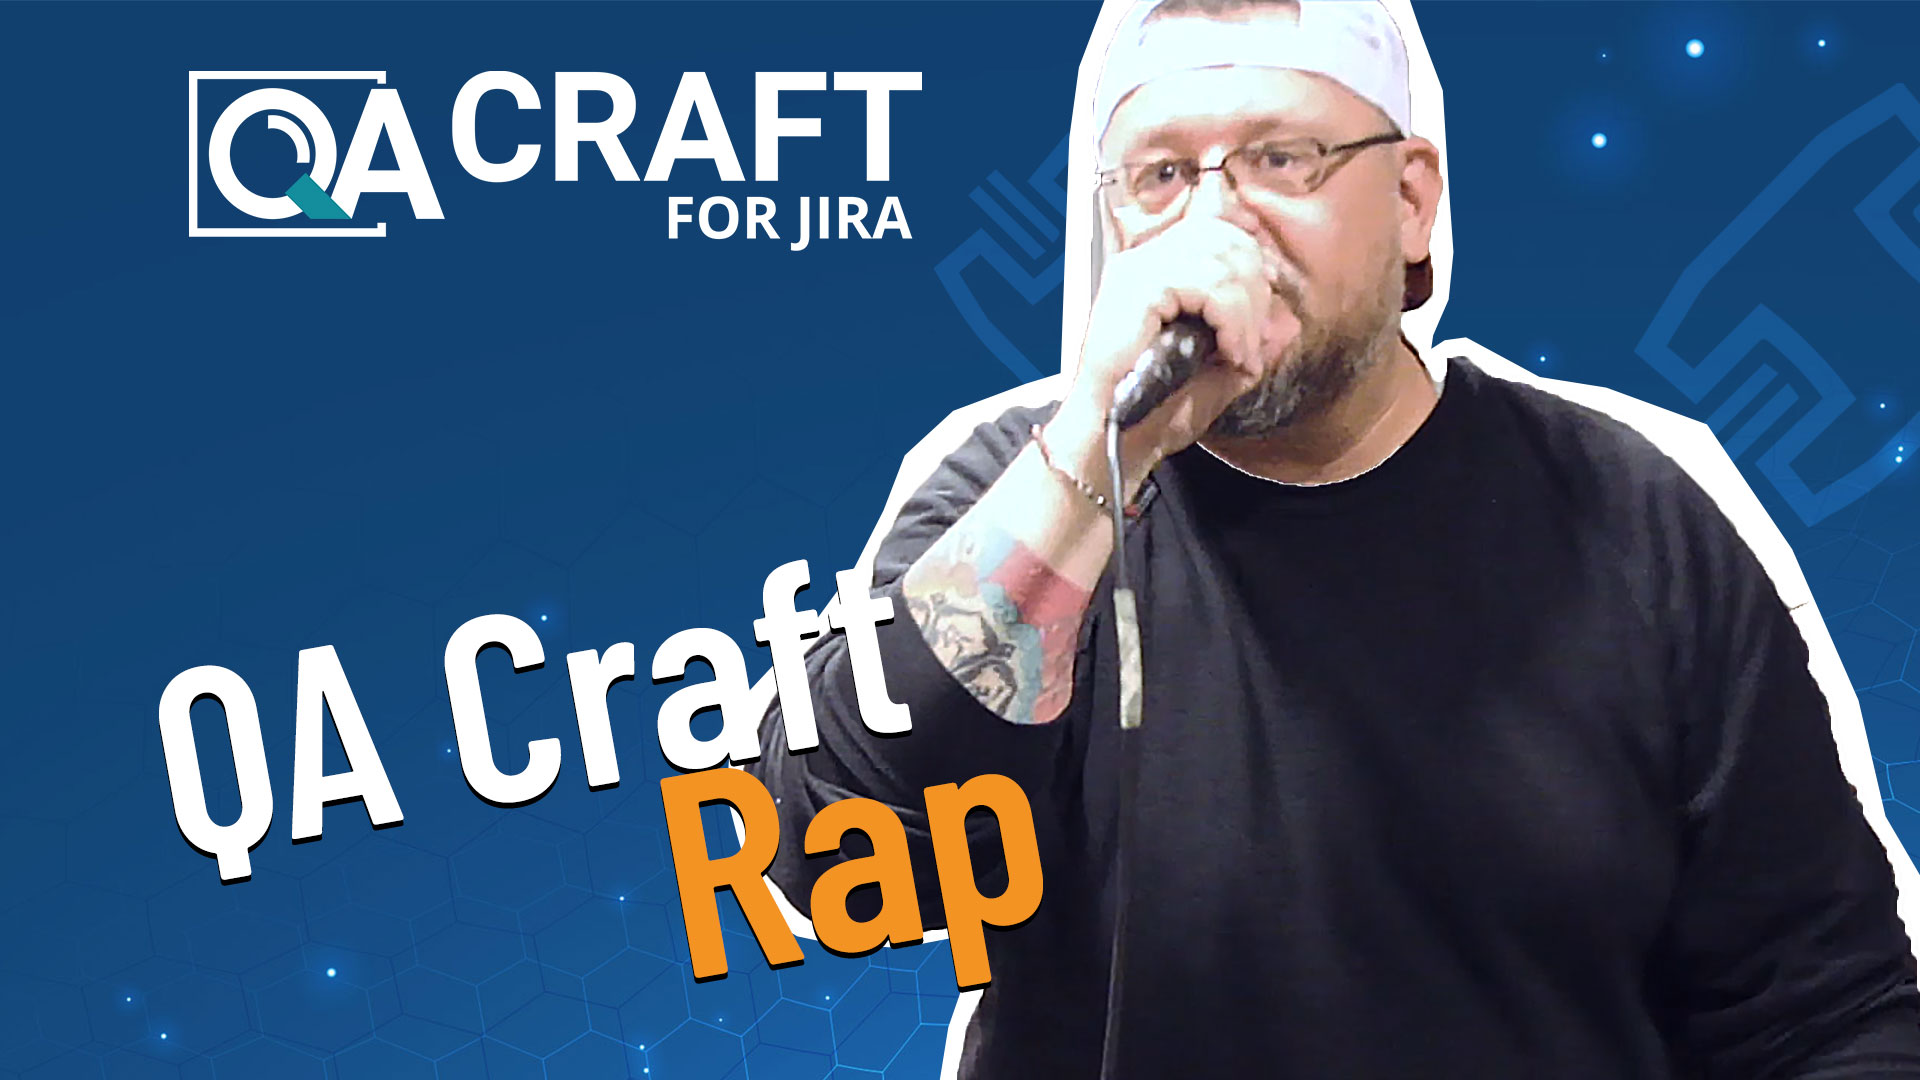 QA Craft for Jira - Rap